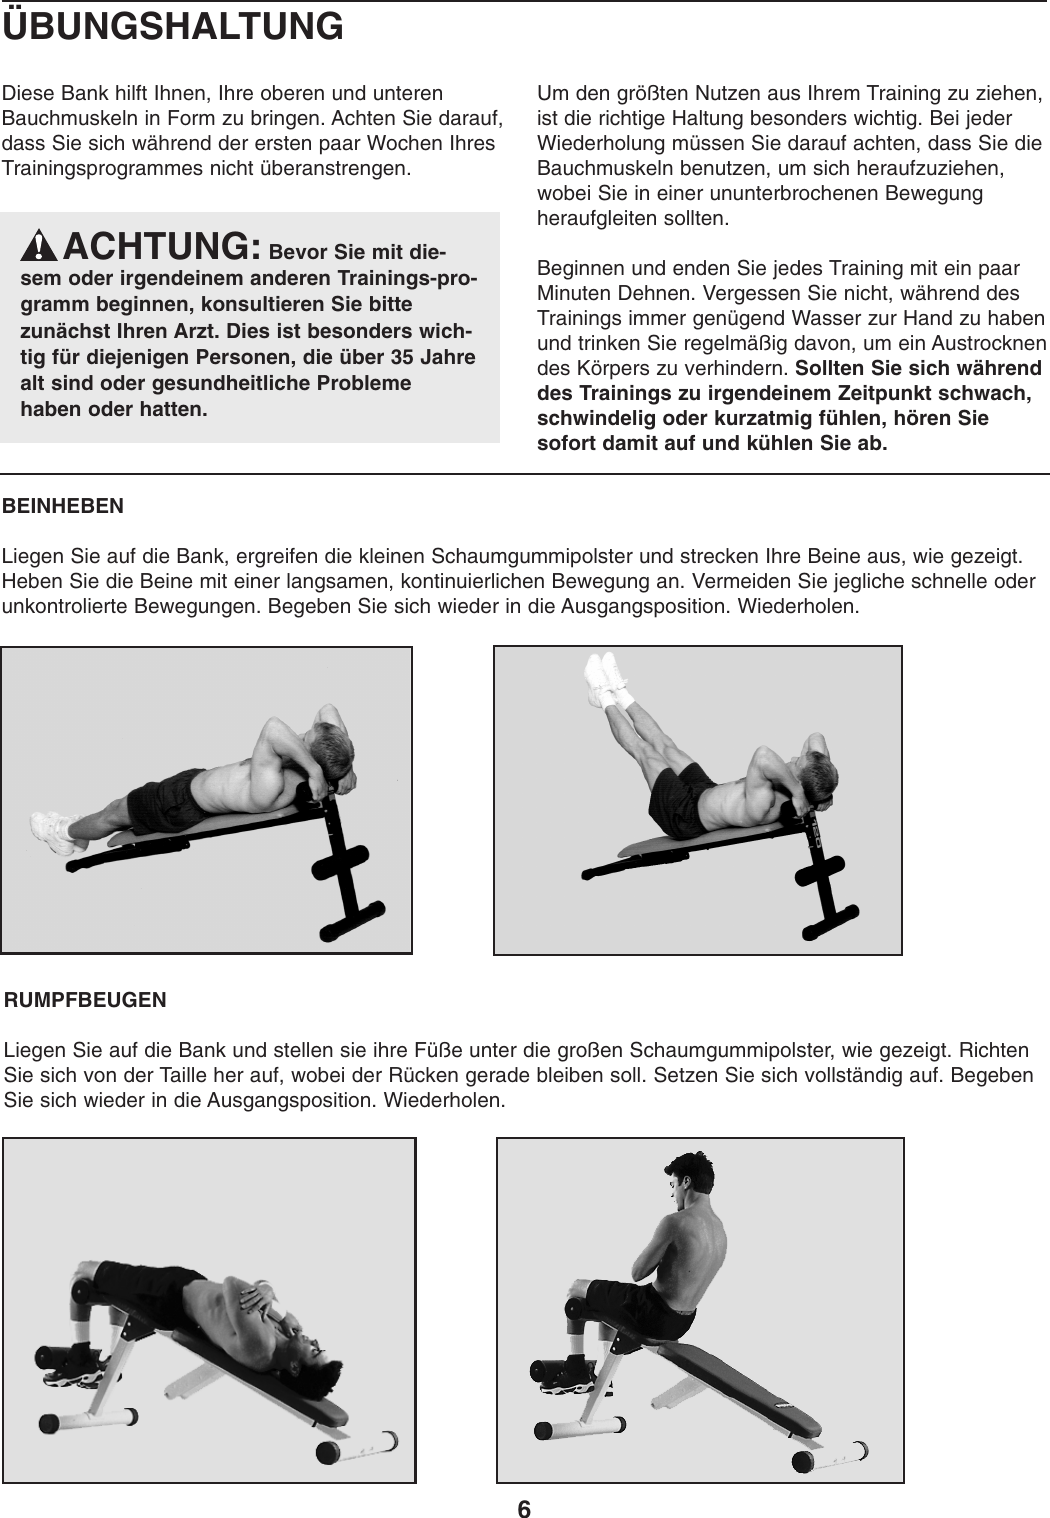 page 6 of weider weider 184 bench weembe0525 users manual - Skateboard Bank Beine